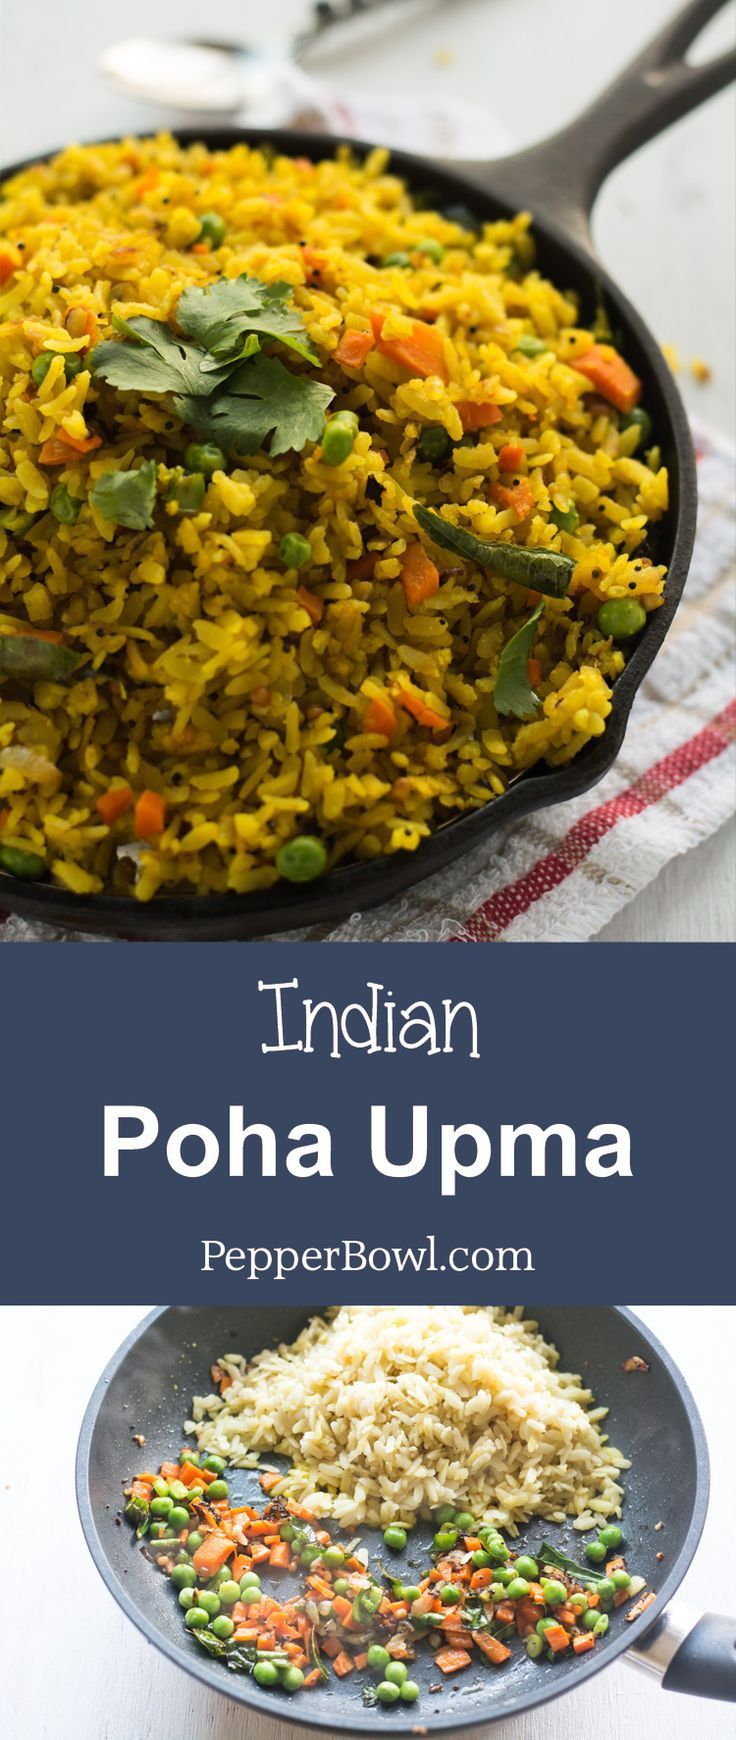 Poha Upma Recipe / Aval Upma yields soft and fluffy poha perfect for breakfast. Explained well with step by step pictures. | http://pepperbowl.com via /pepperbowl/